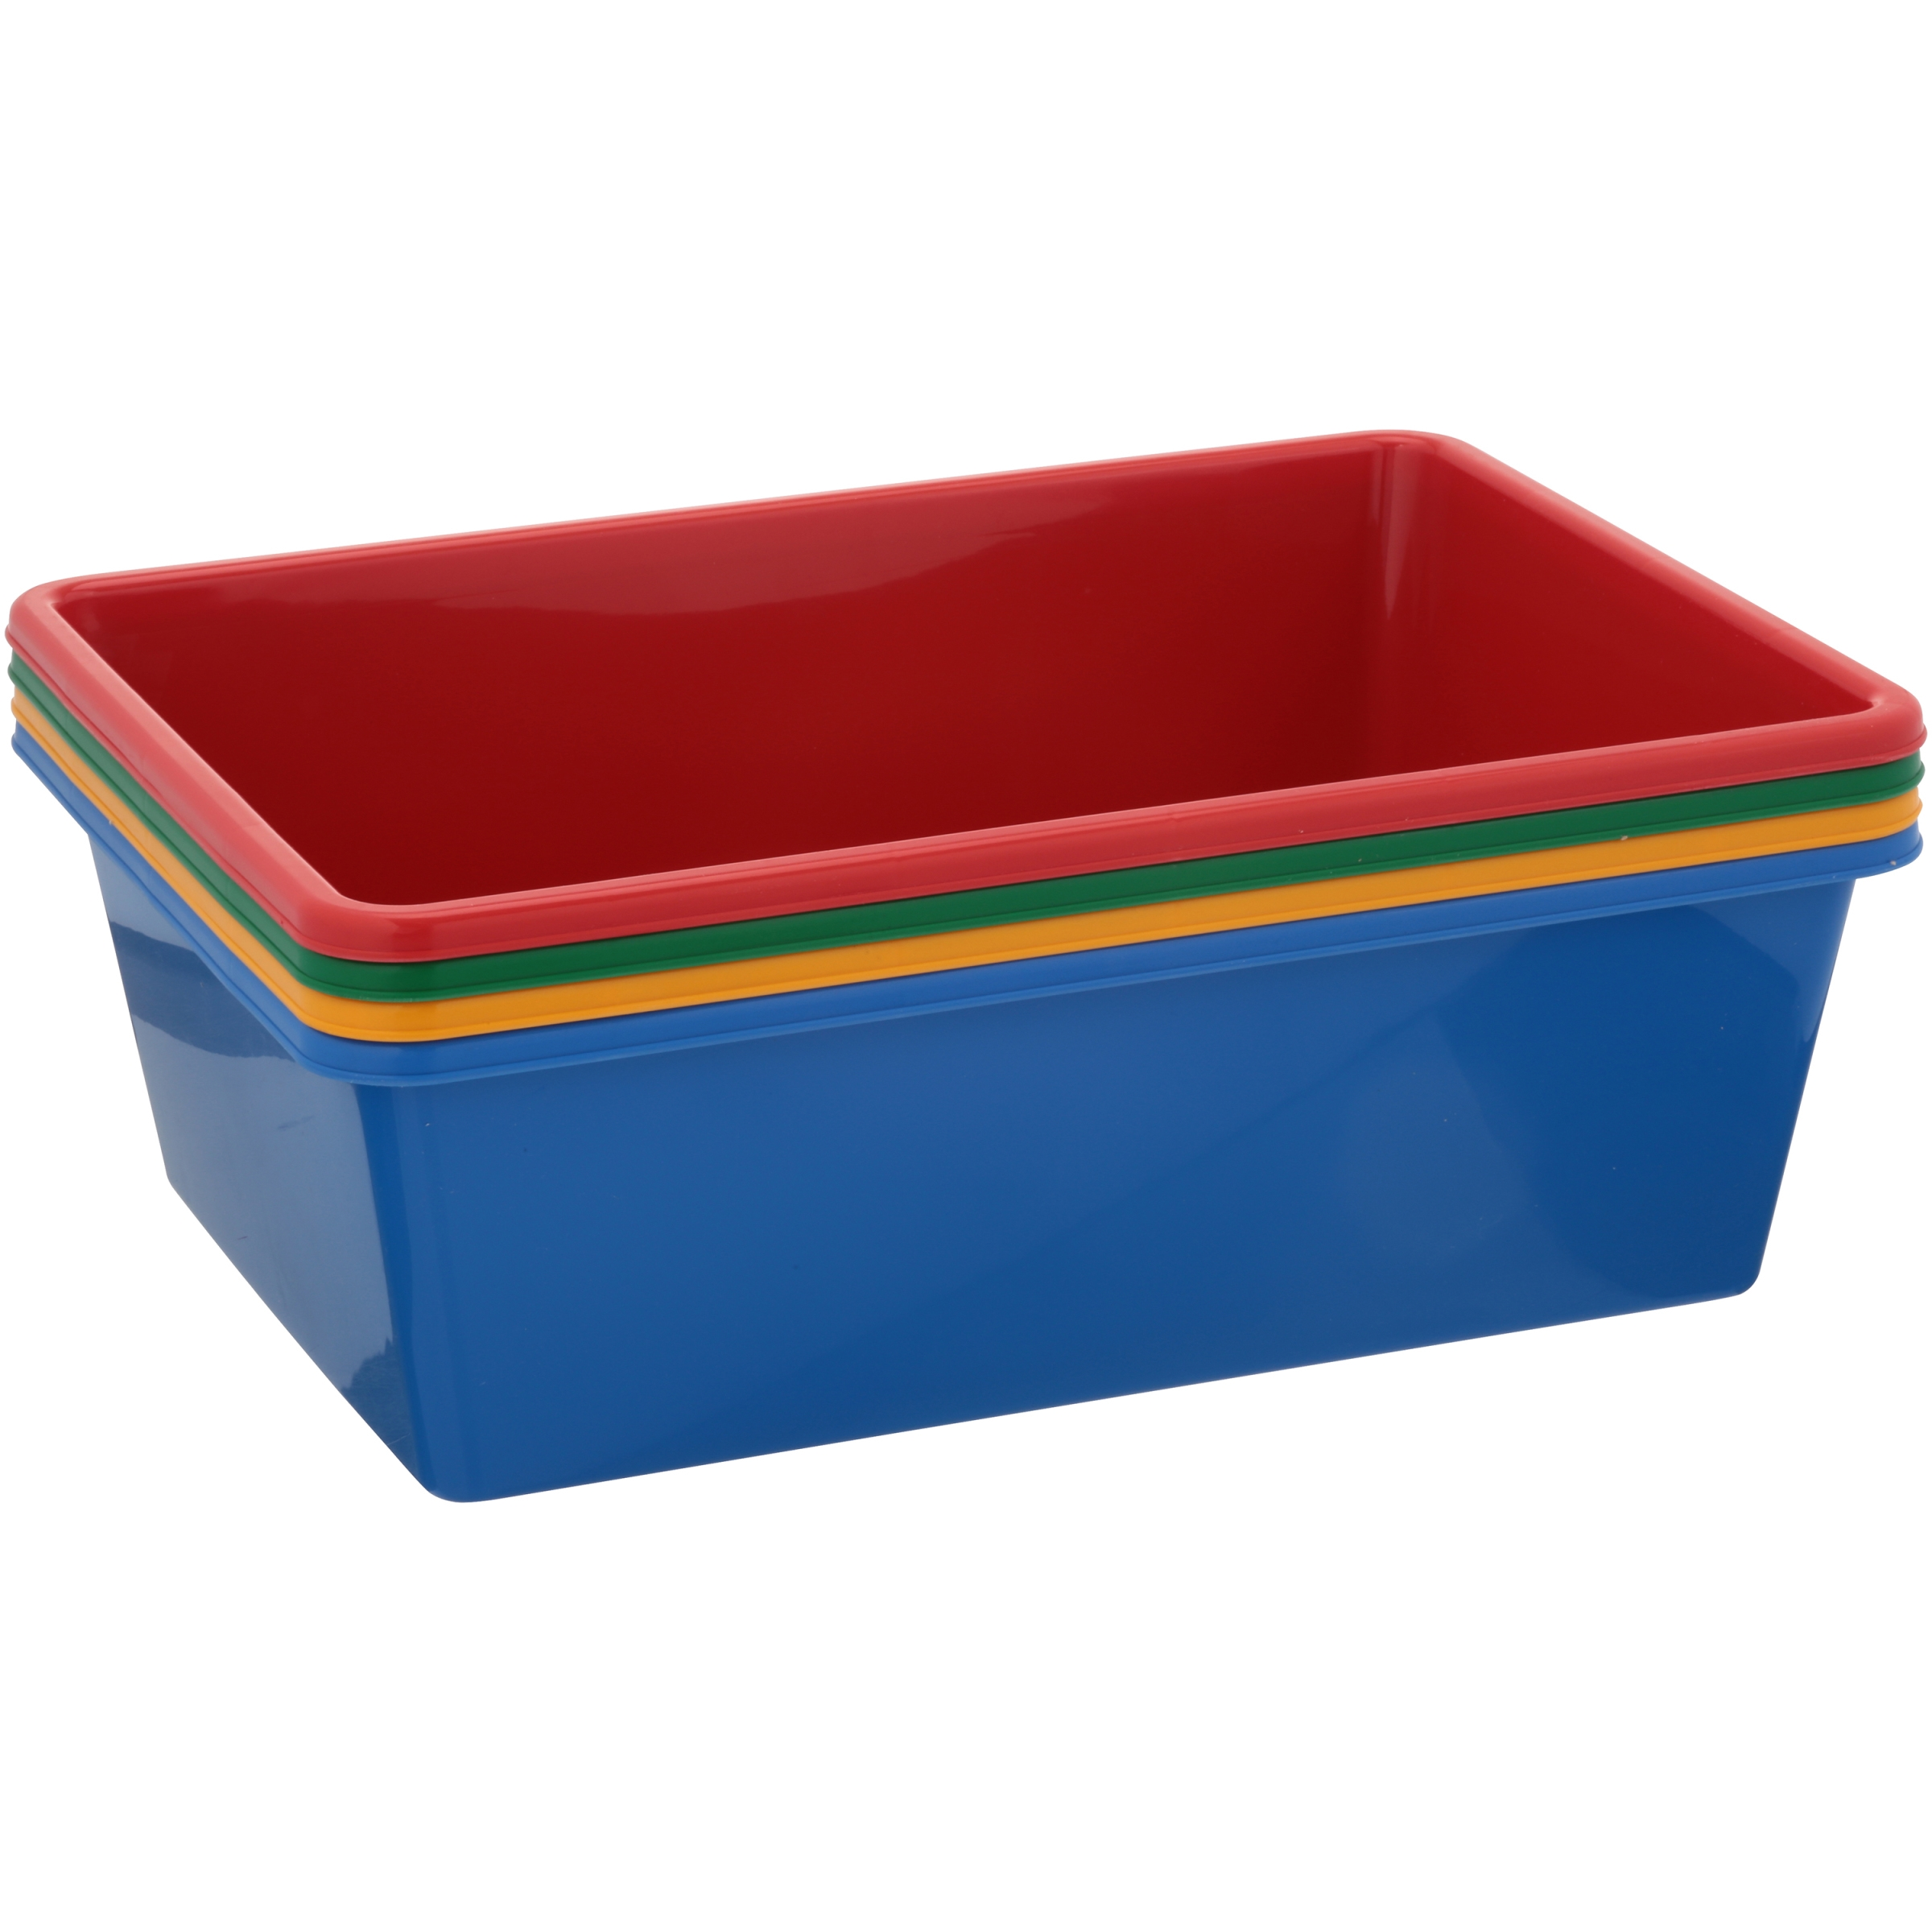 Tot Tutors Playtime Storage Bins 4 ct Box